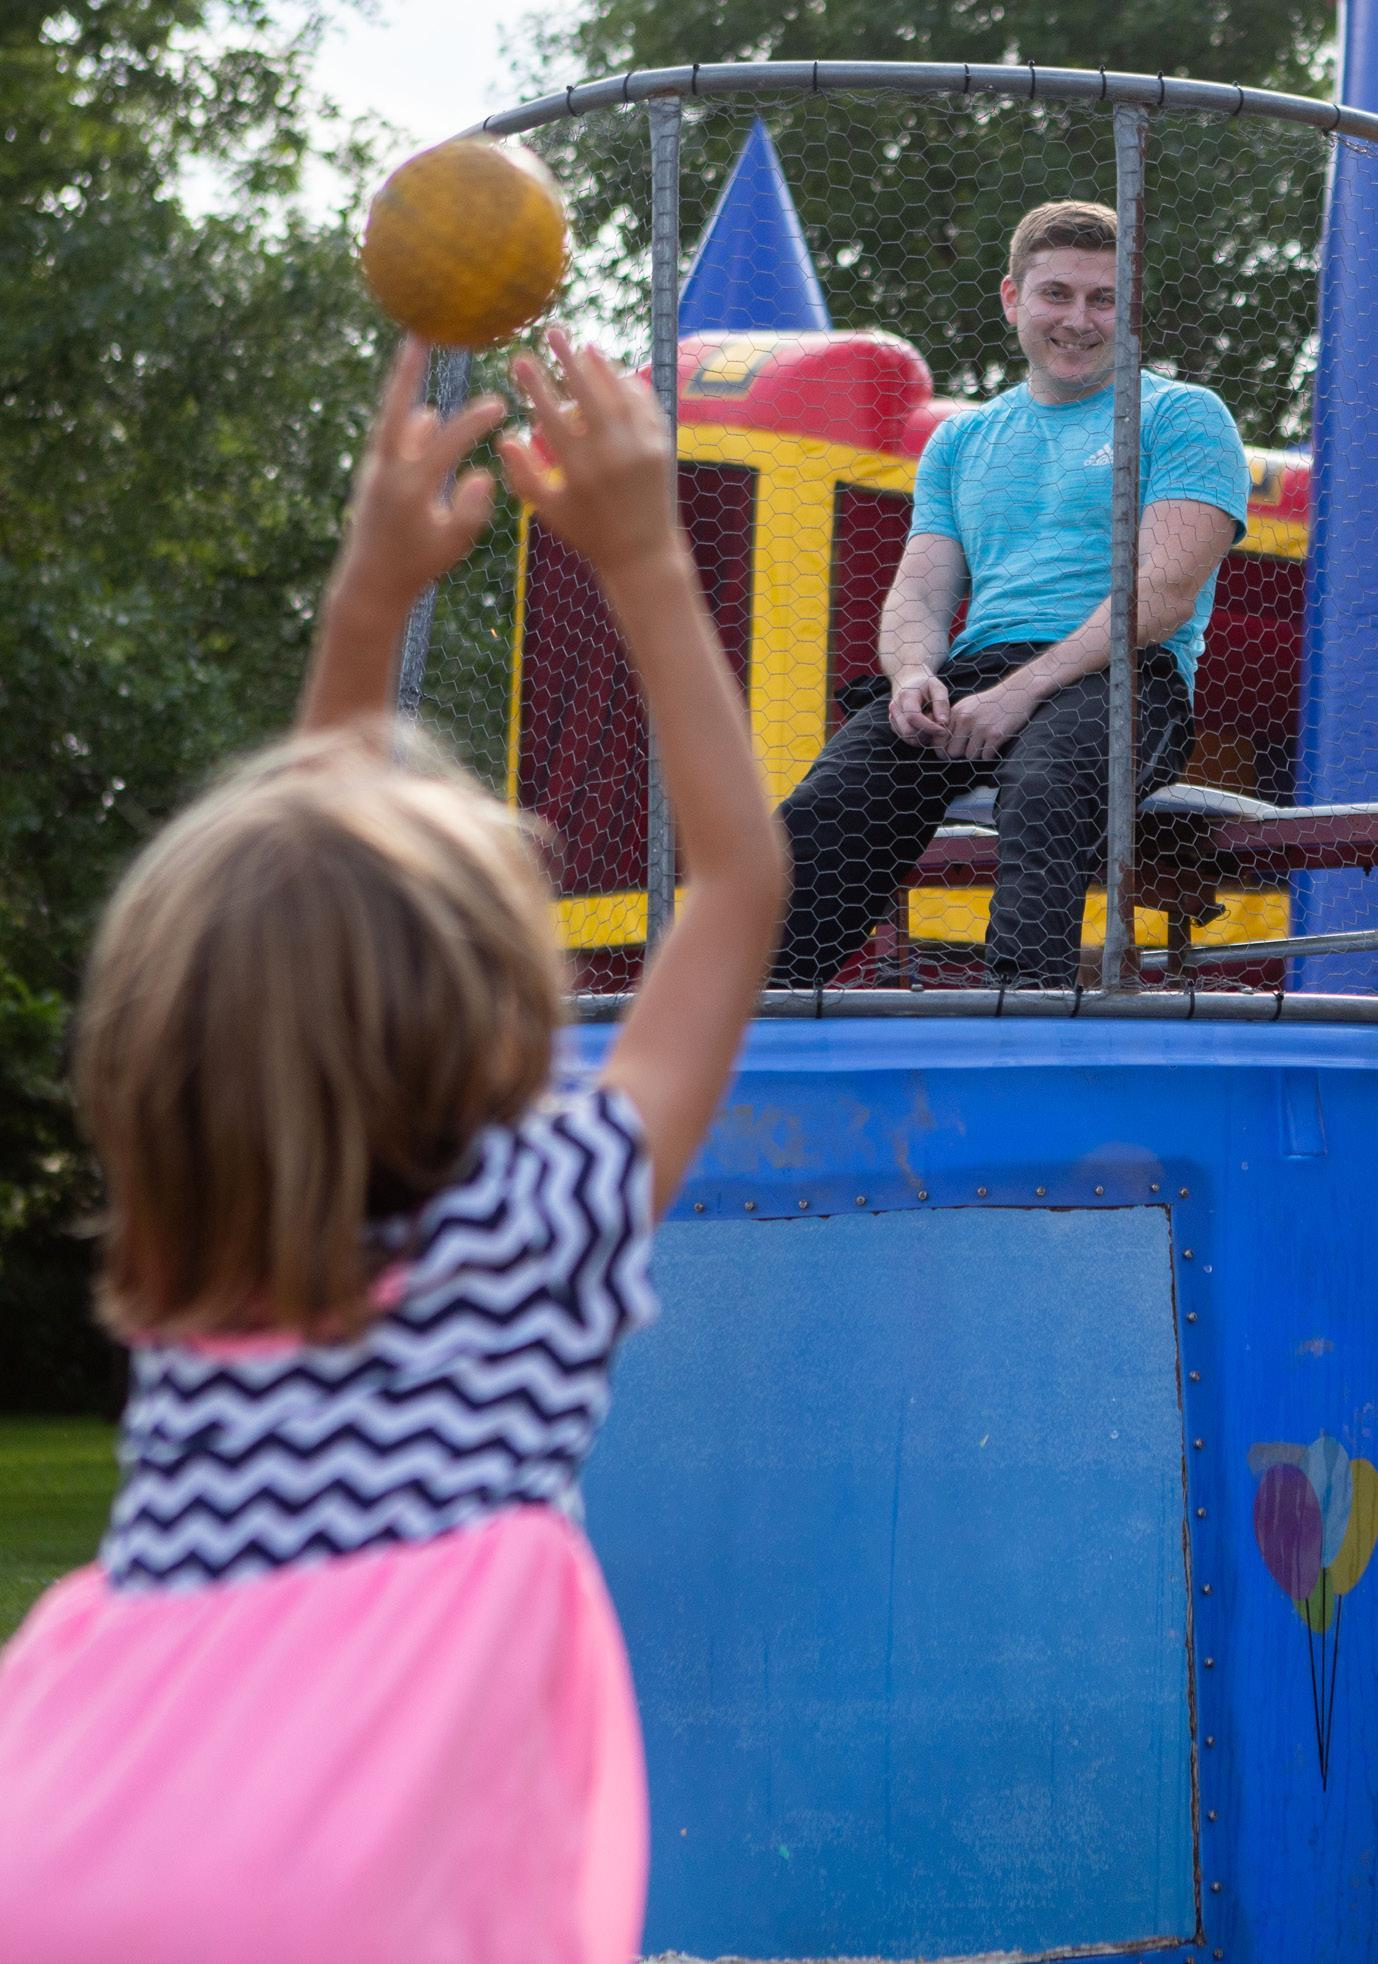 Jocelyn Hamilton throws the ball at the target to dunk Coleridge Police Chief Matt Monday during Community Day in Coleridge on Saturday. Hamilton was the first to dunk Monday during this celebration to welcome him to the village. The celebration also featured food and games for the entire family.